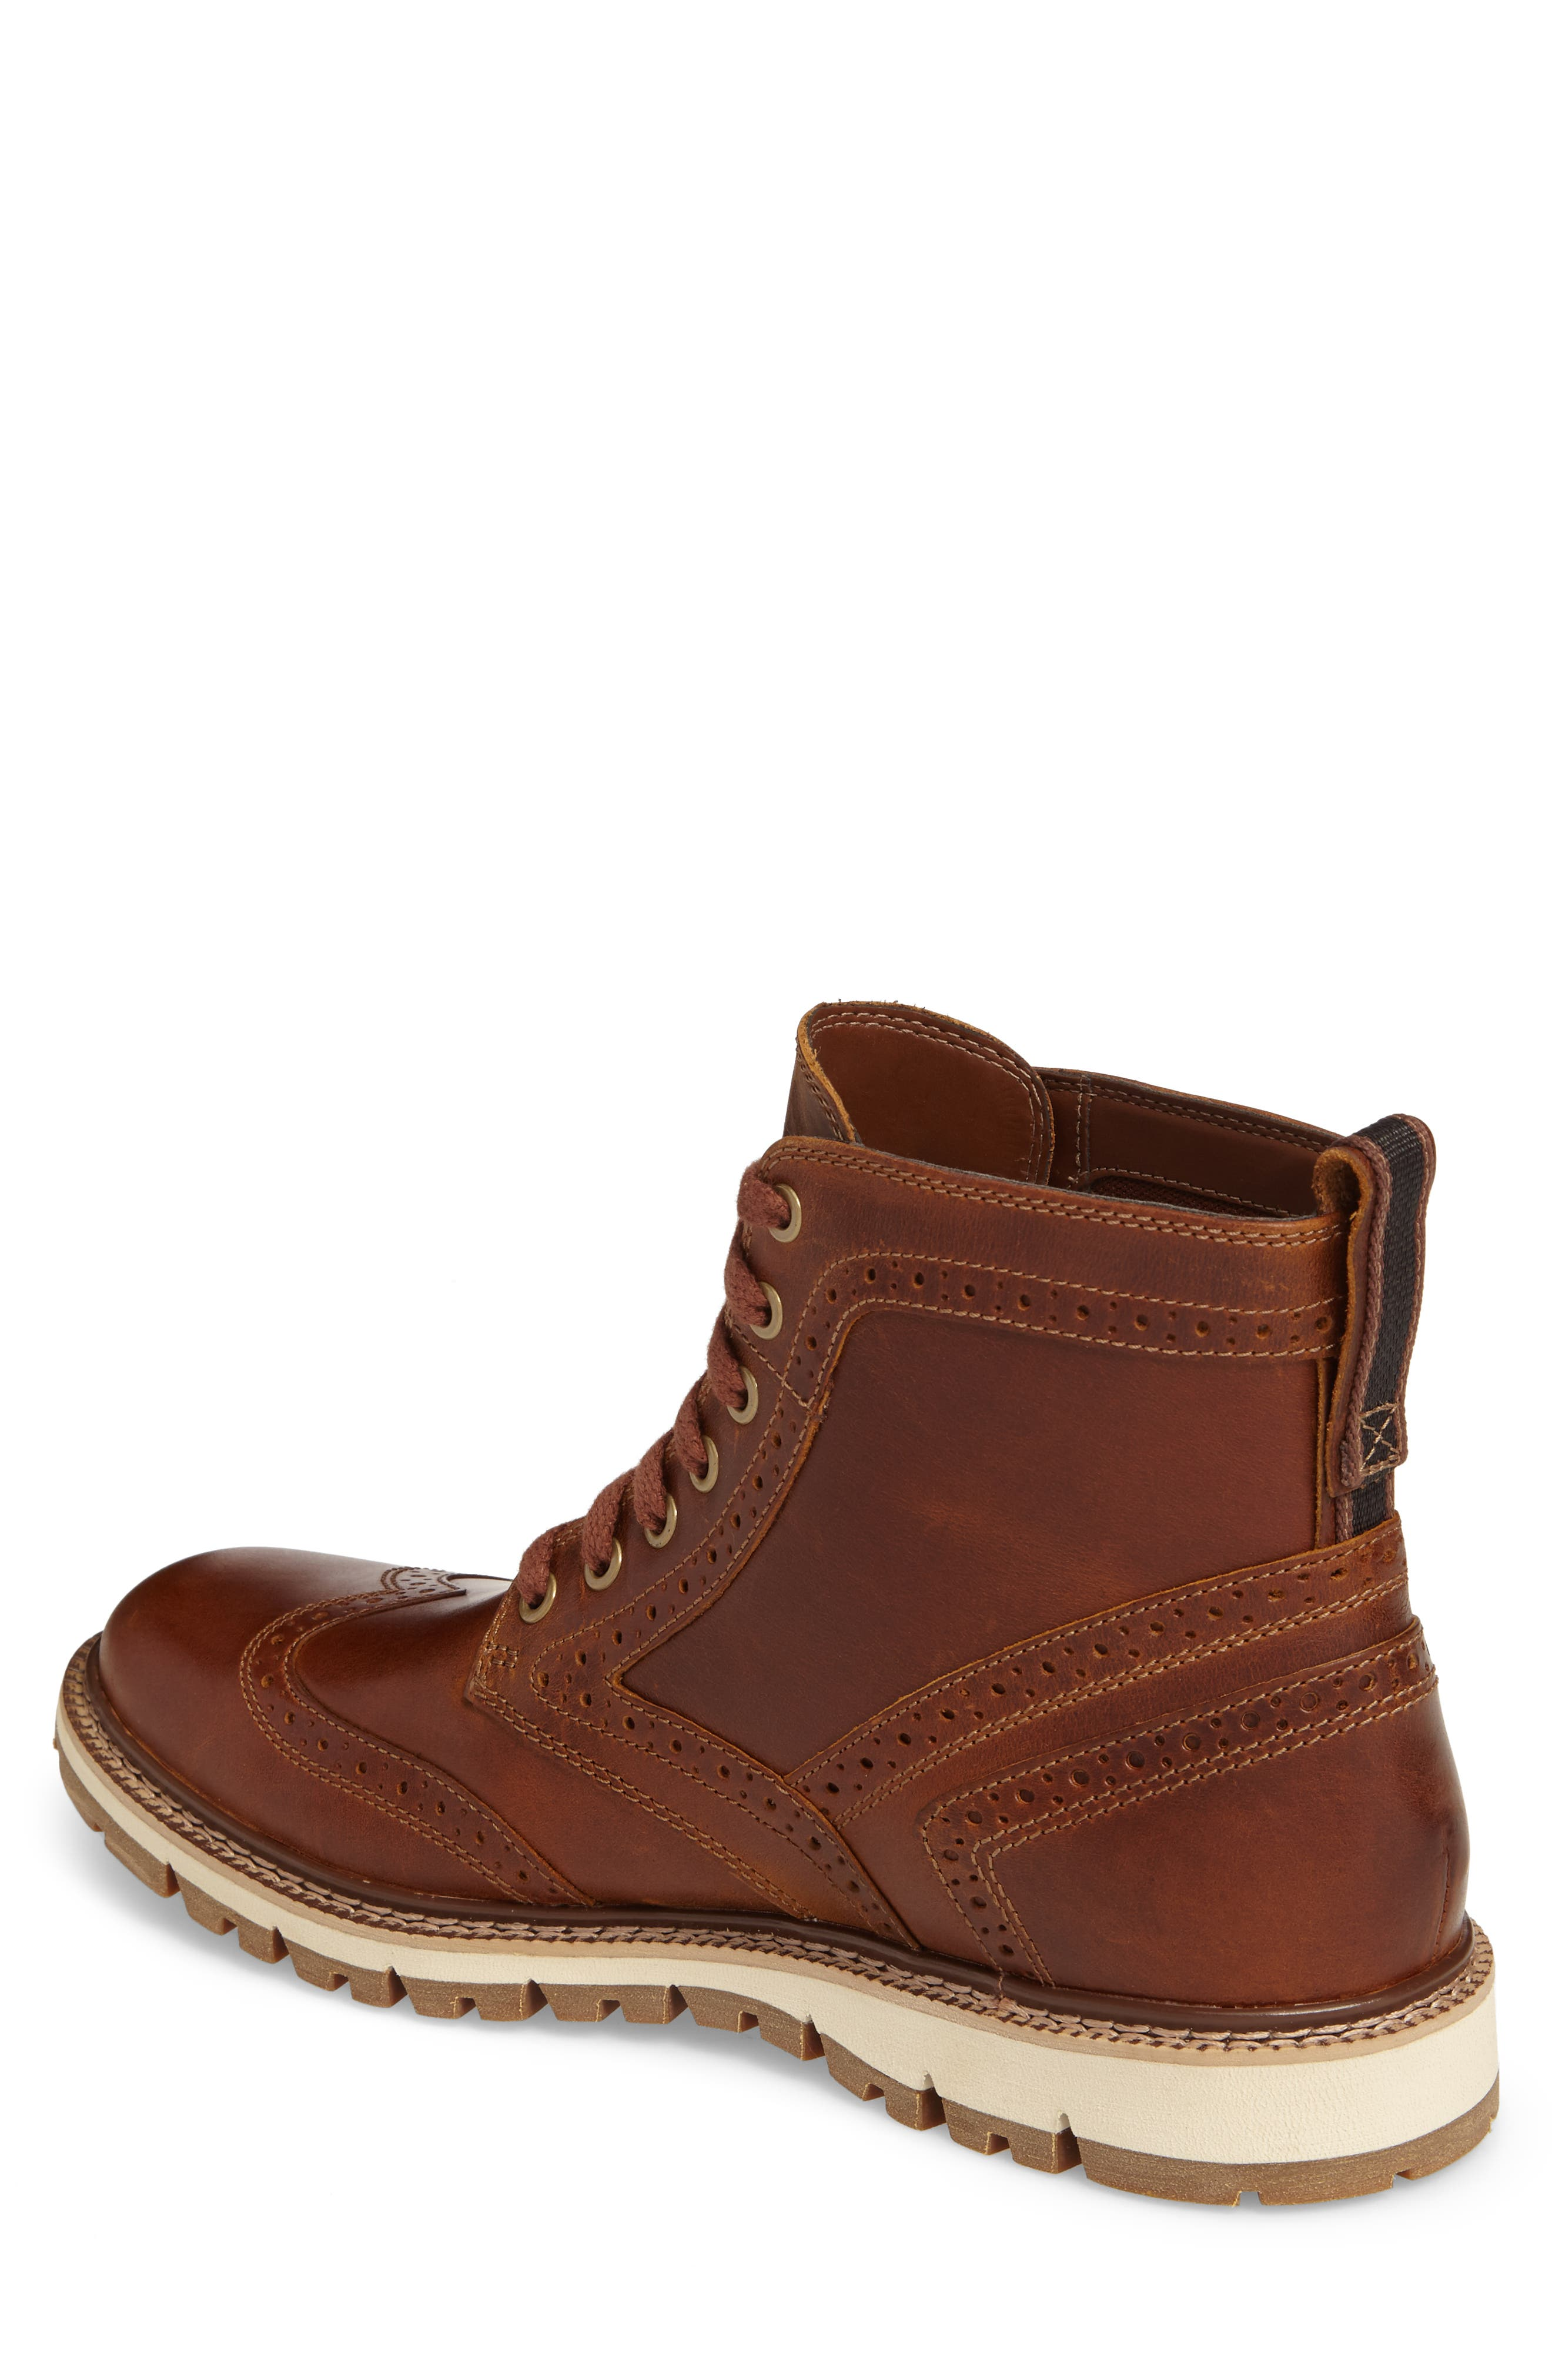 Britton Hill Wingtip Boot,                             Alternate thumbnail 4, color,